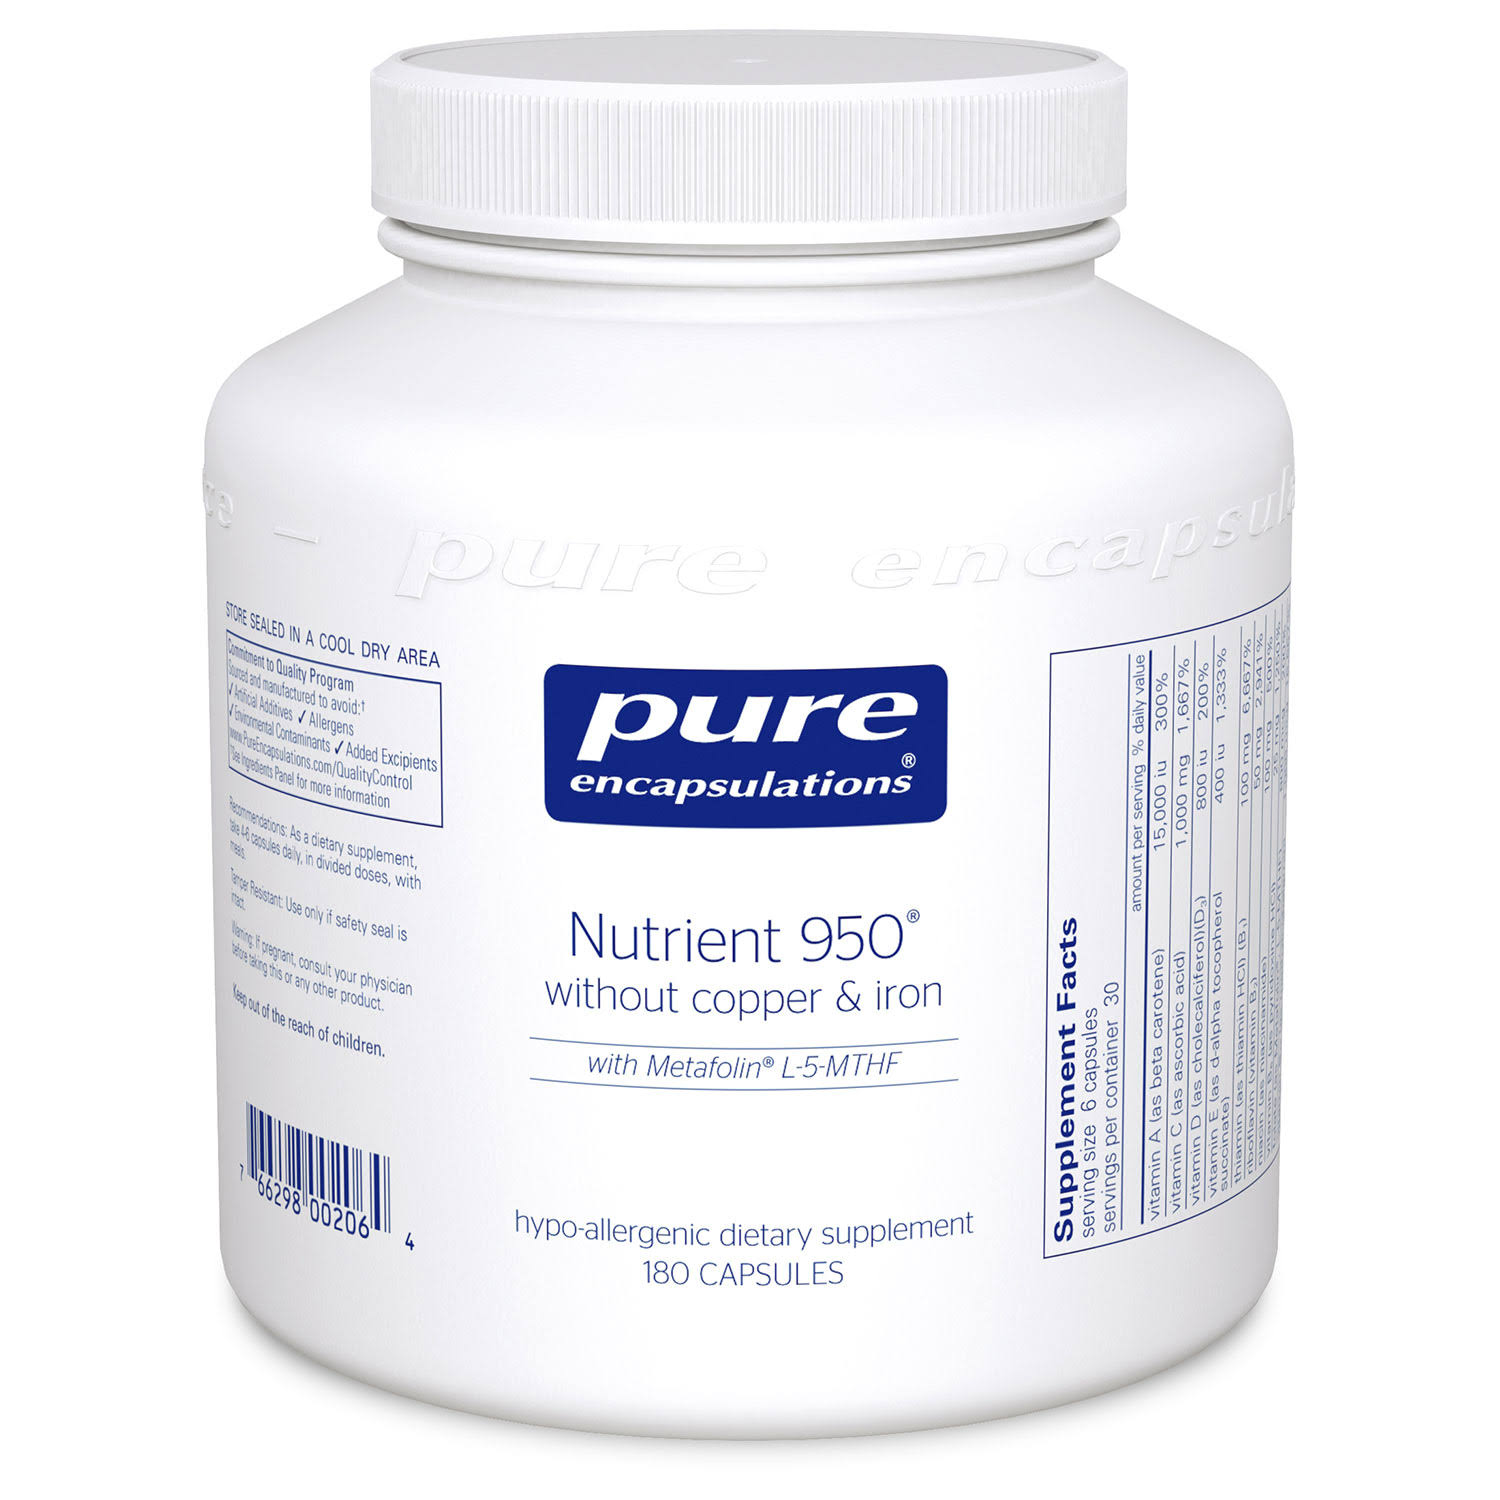 Pure Encapsulations Nutrient 950 Supplement - 180 Capsules